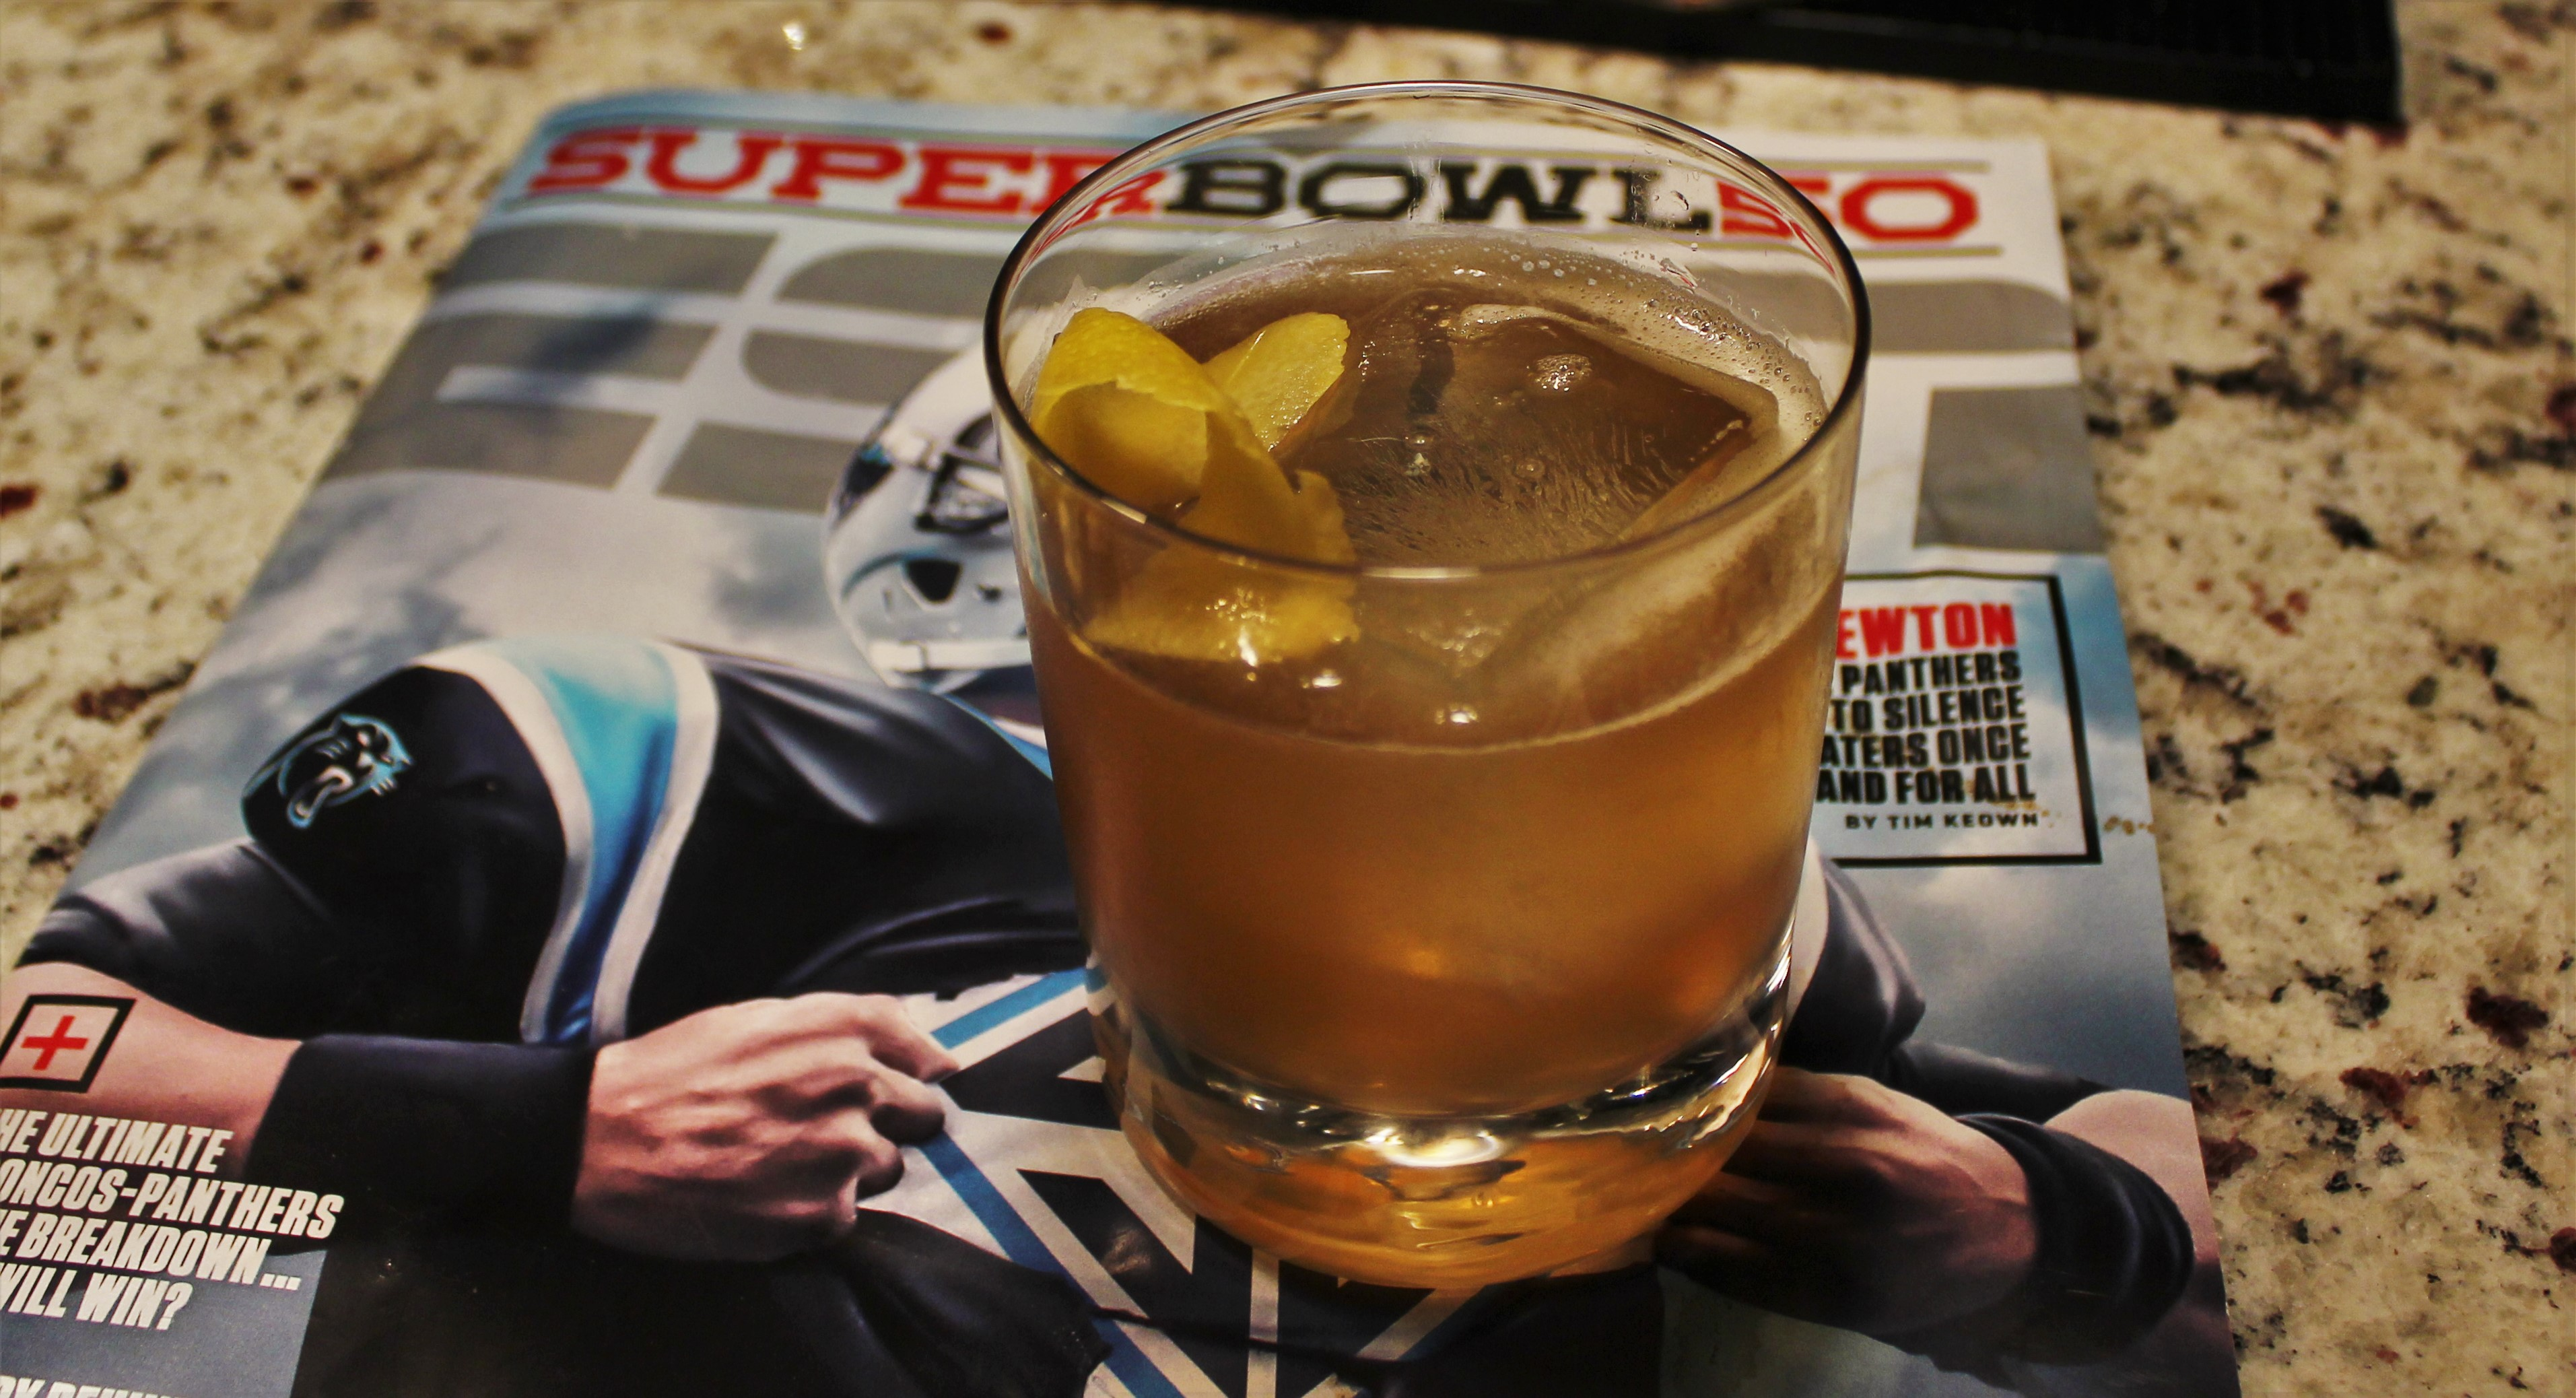 This, That and the Third: The Official Cocktail of Super Bowl 50